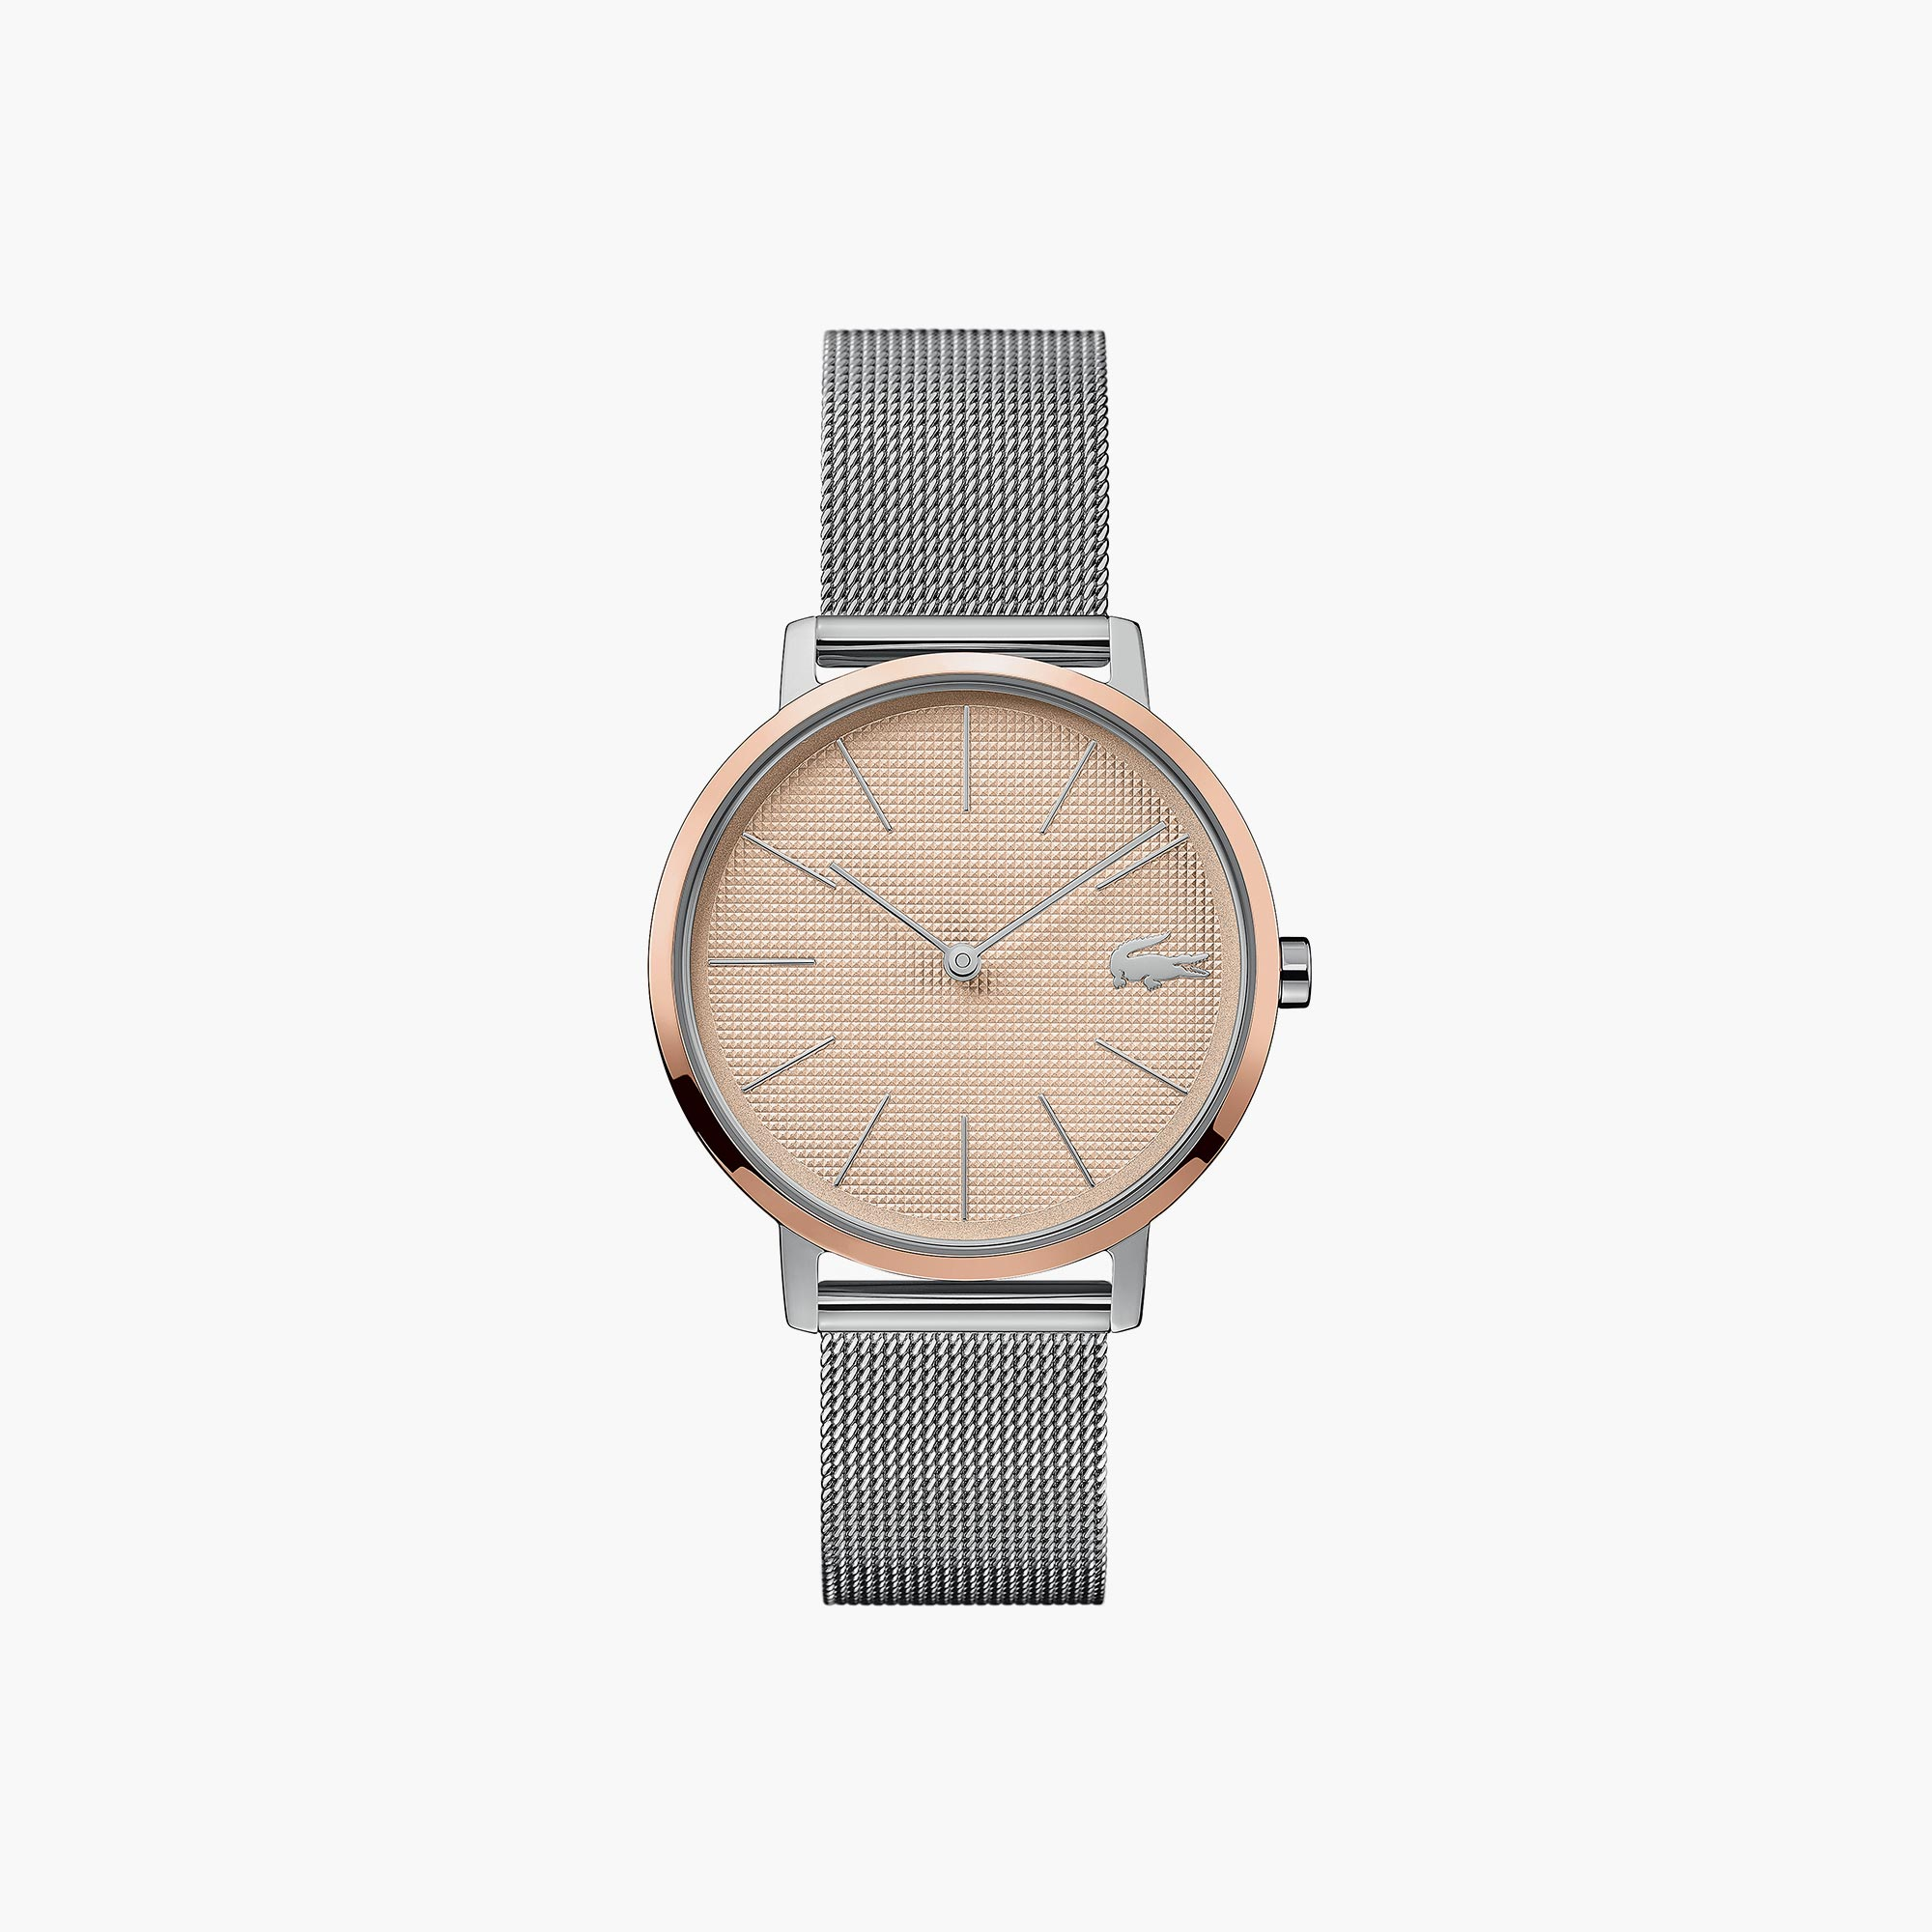 Ladies Moon Watch with Stainless Steel Mesh Band Strap and Rose Gold Dial